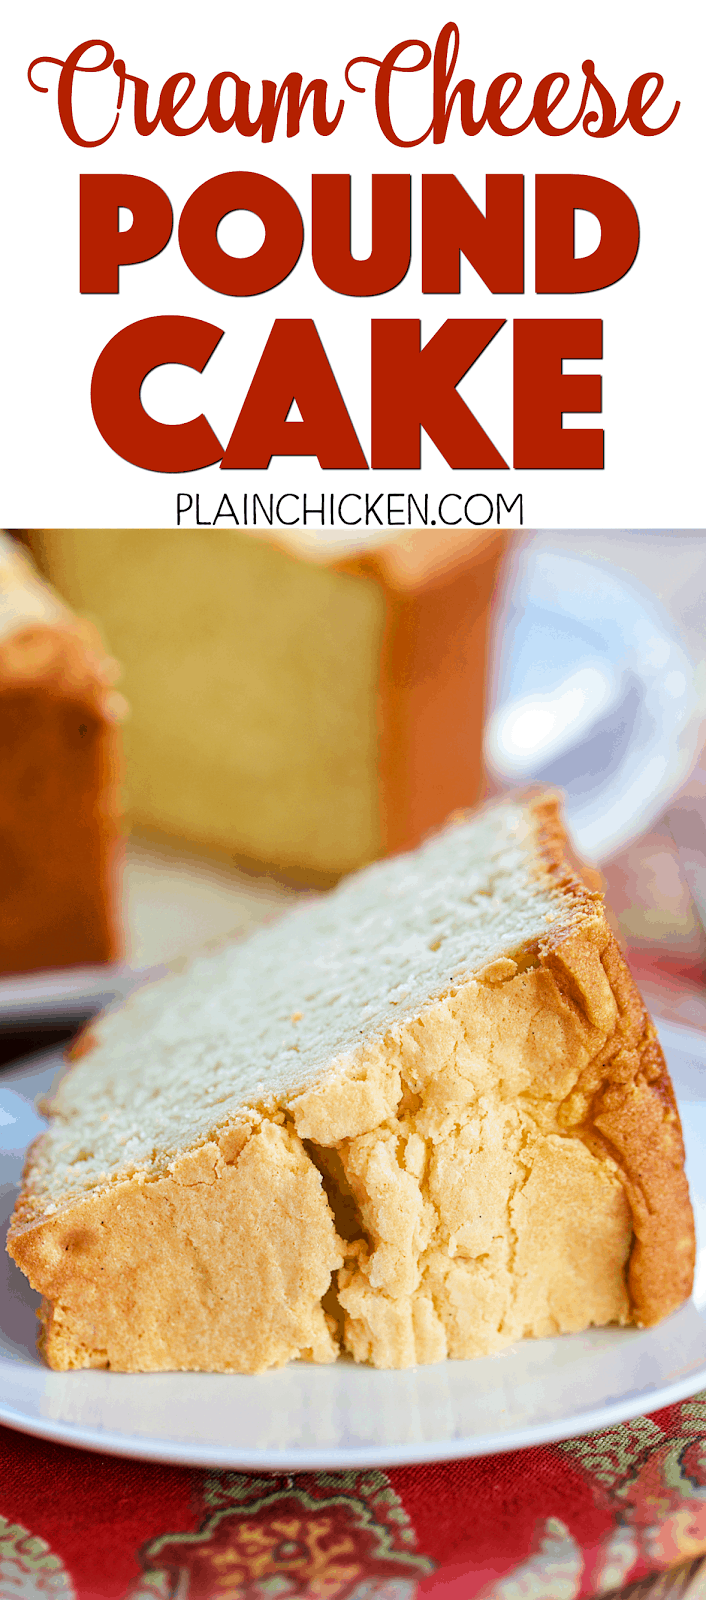 Cream Cheese Pound Cake - INCREDIBLE! So simple, yet so delicious! Butter, cream cheese, sugar, eggs, flour, vanilla. Serve with vanilla ice cream. Great for holiday meal dessert. Also makes a great homemade holiday gift!